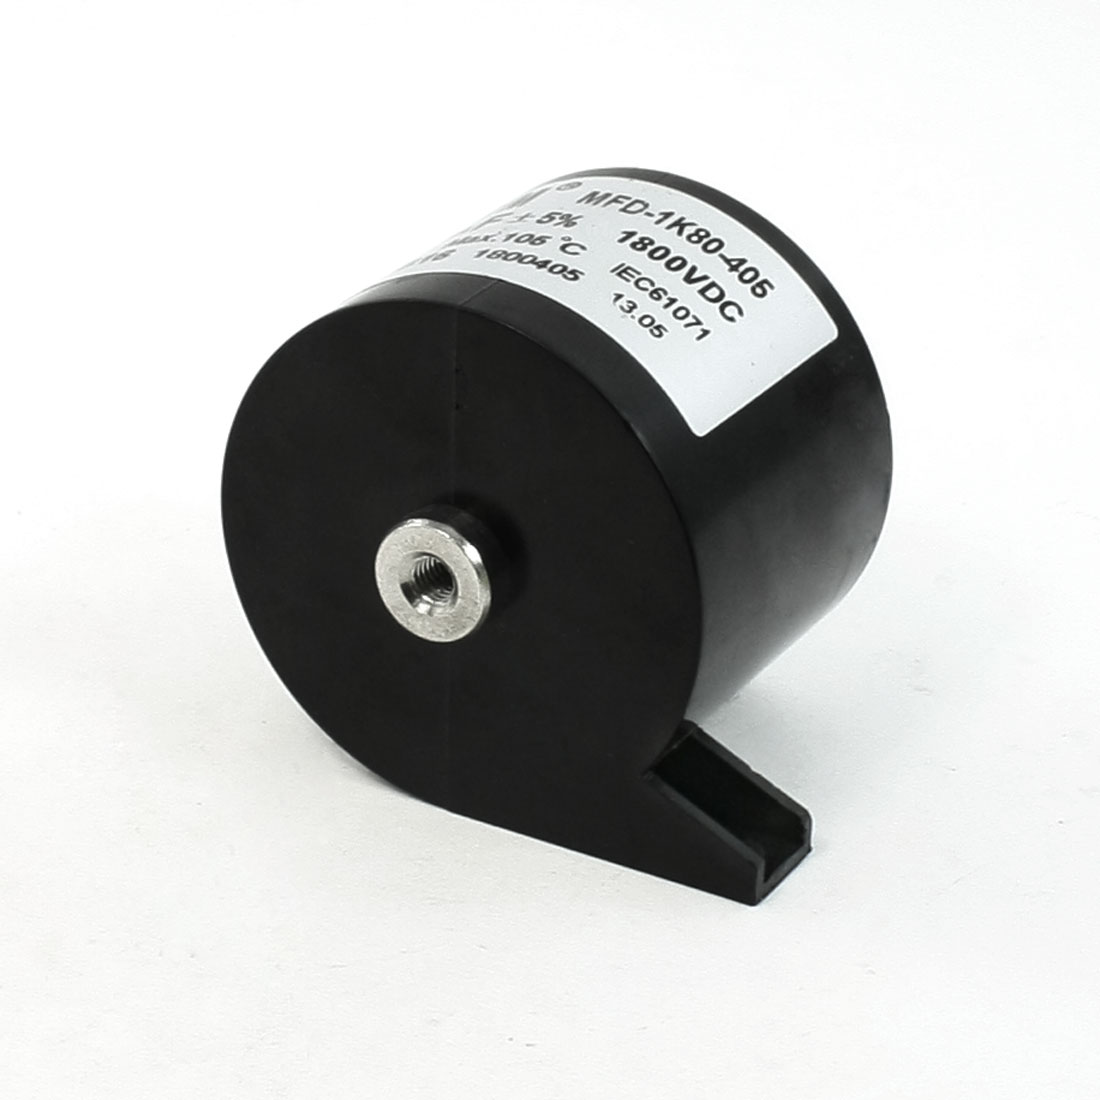 CBB16 DC 1800V 4uF 5% Machine Plastic Housing Motor Run Capacitor